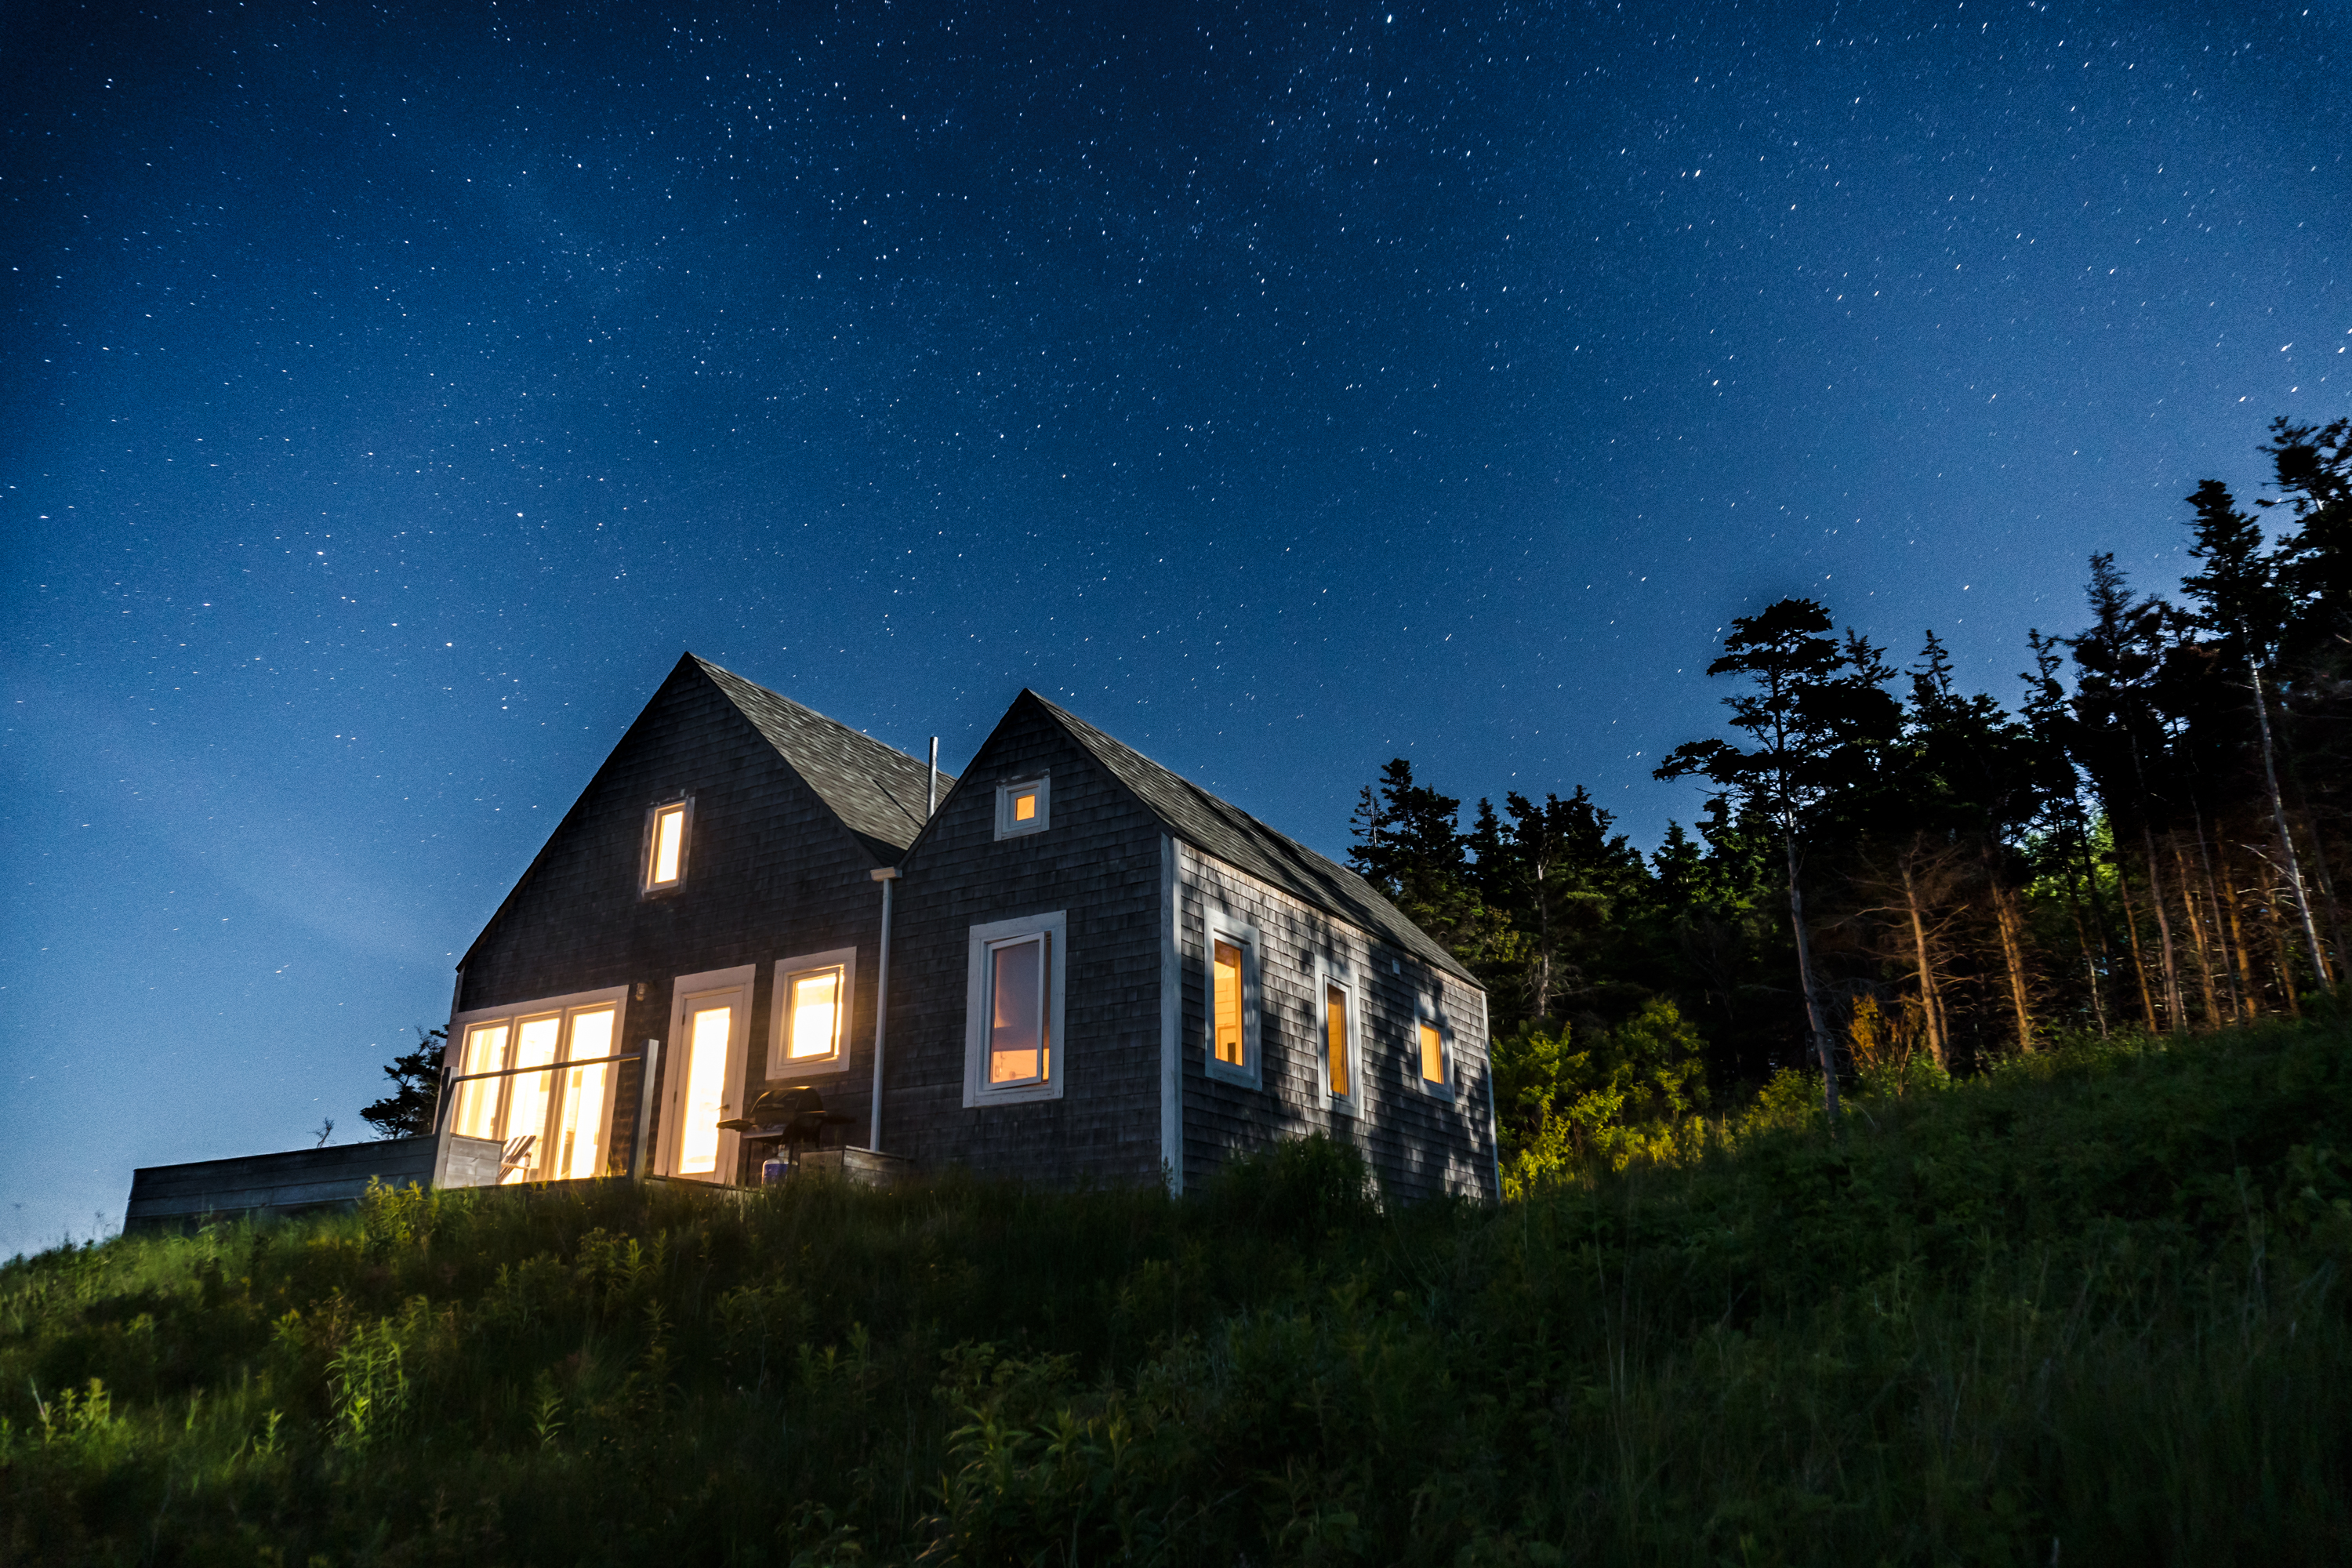 incredible stars, cape cottage